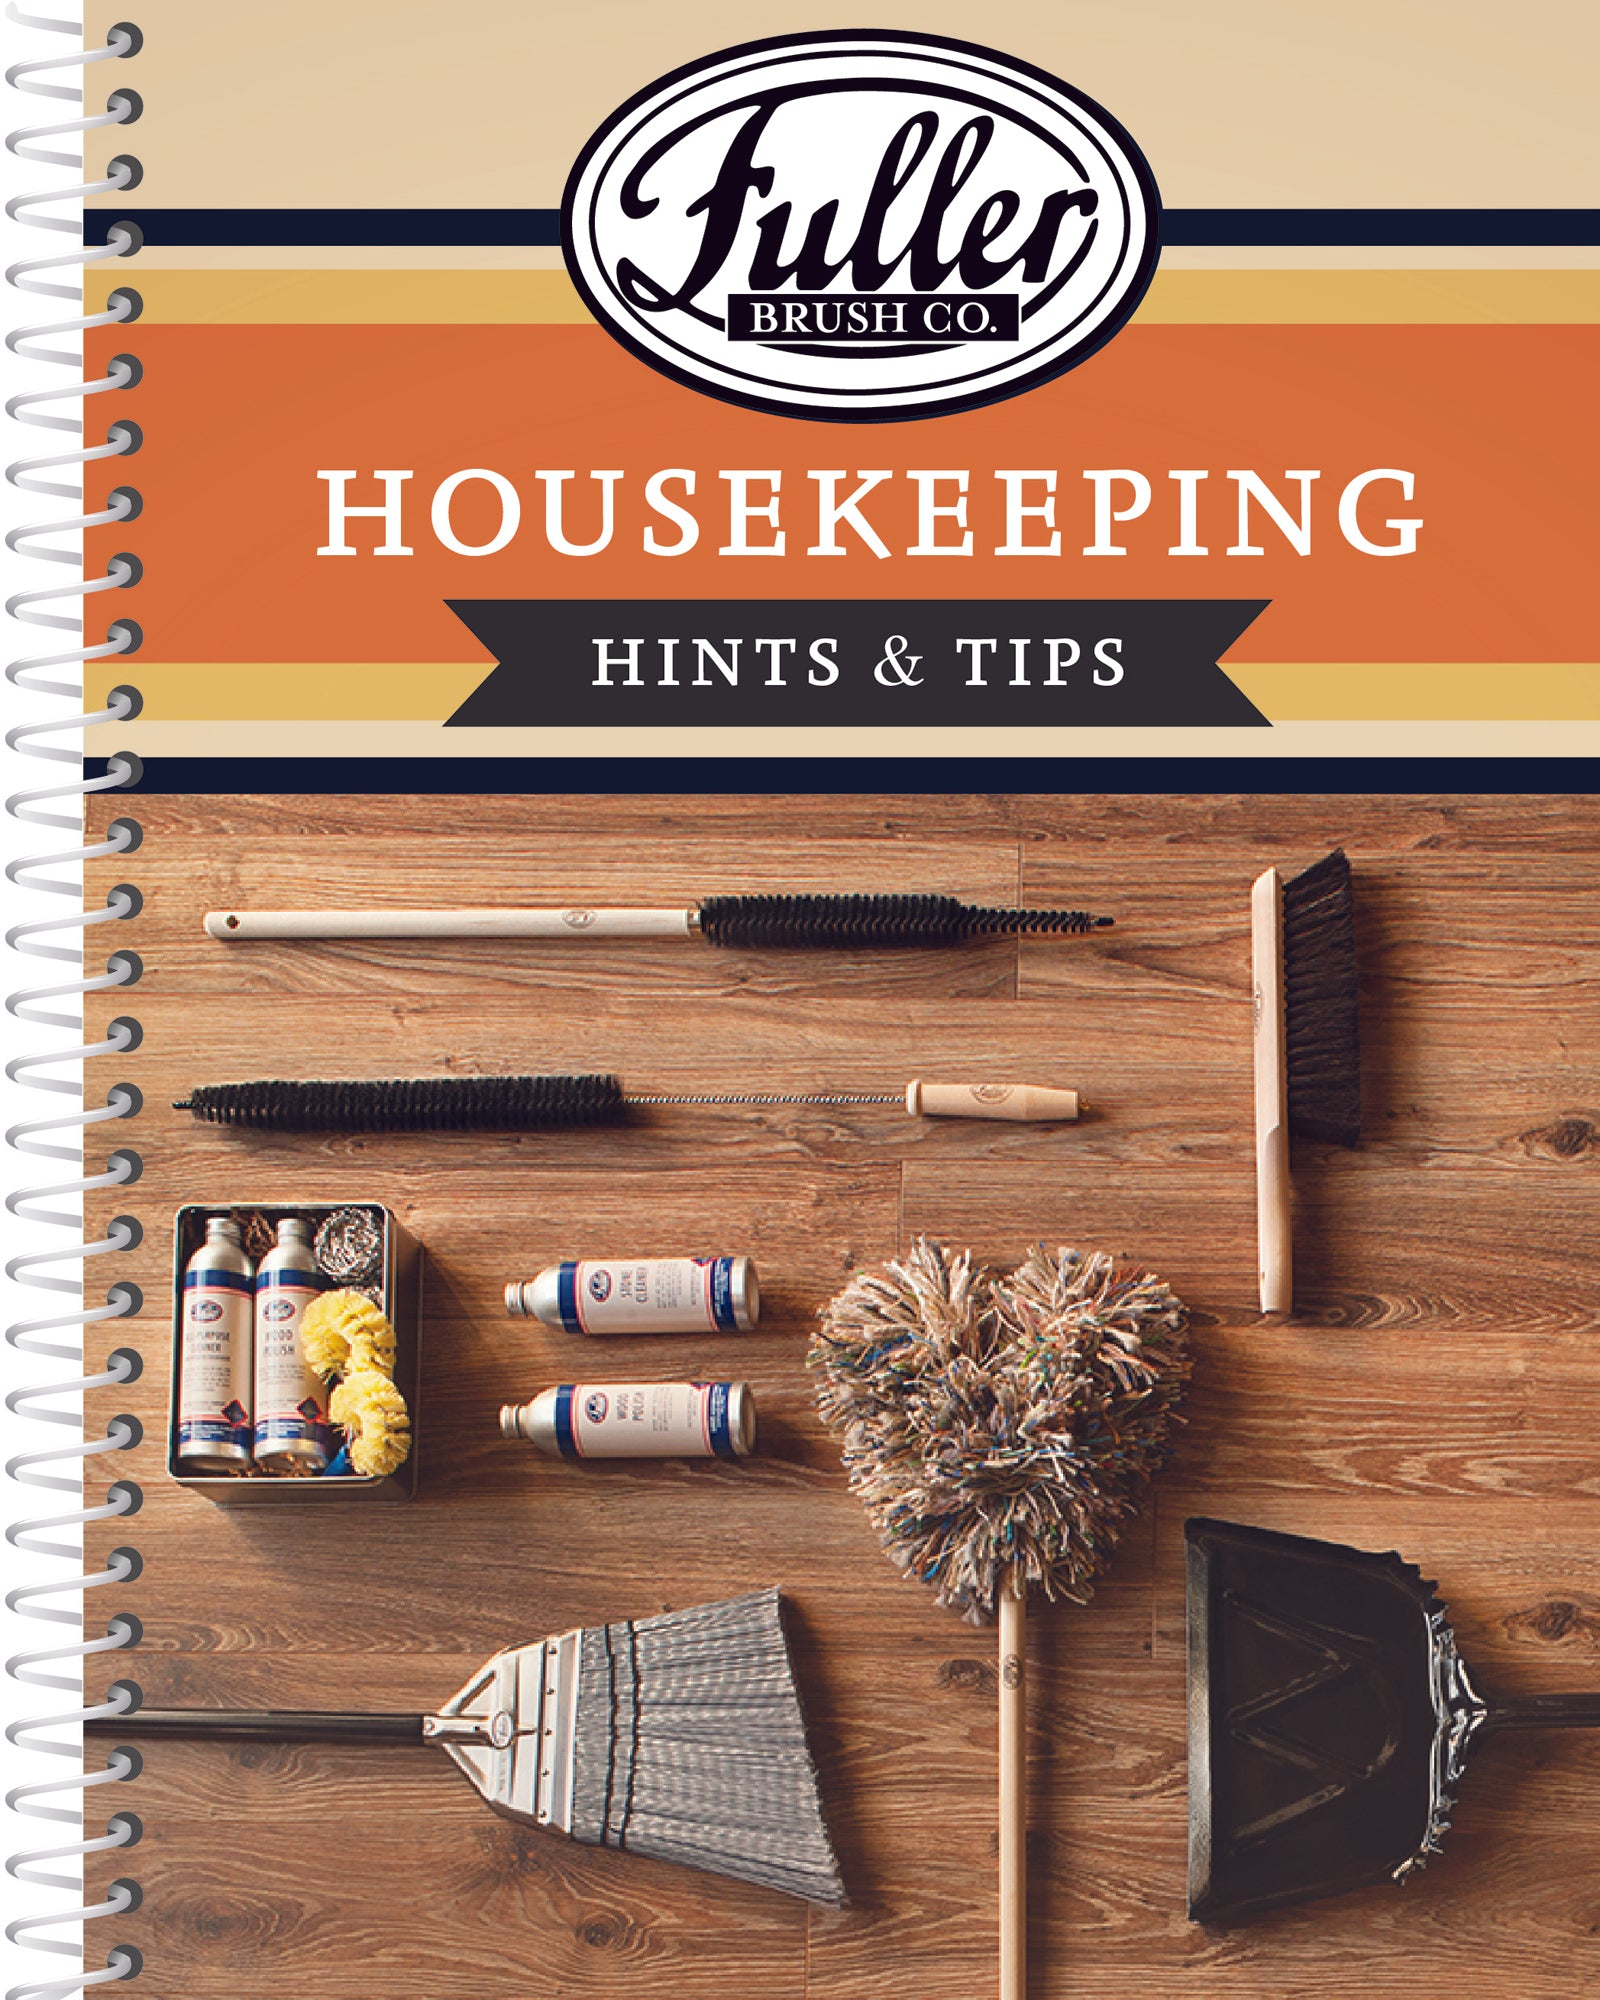 Housekeeping Book - Hints & Tips